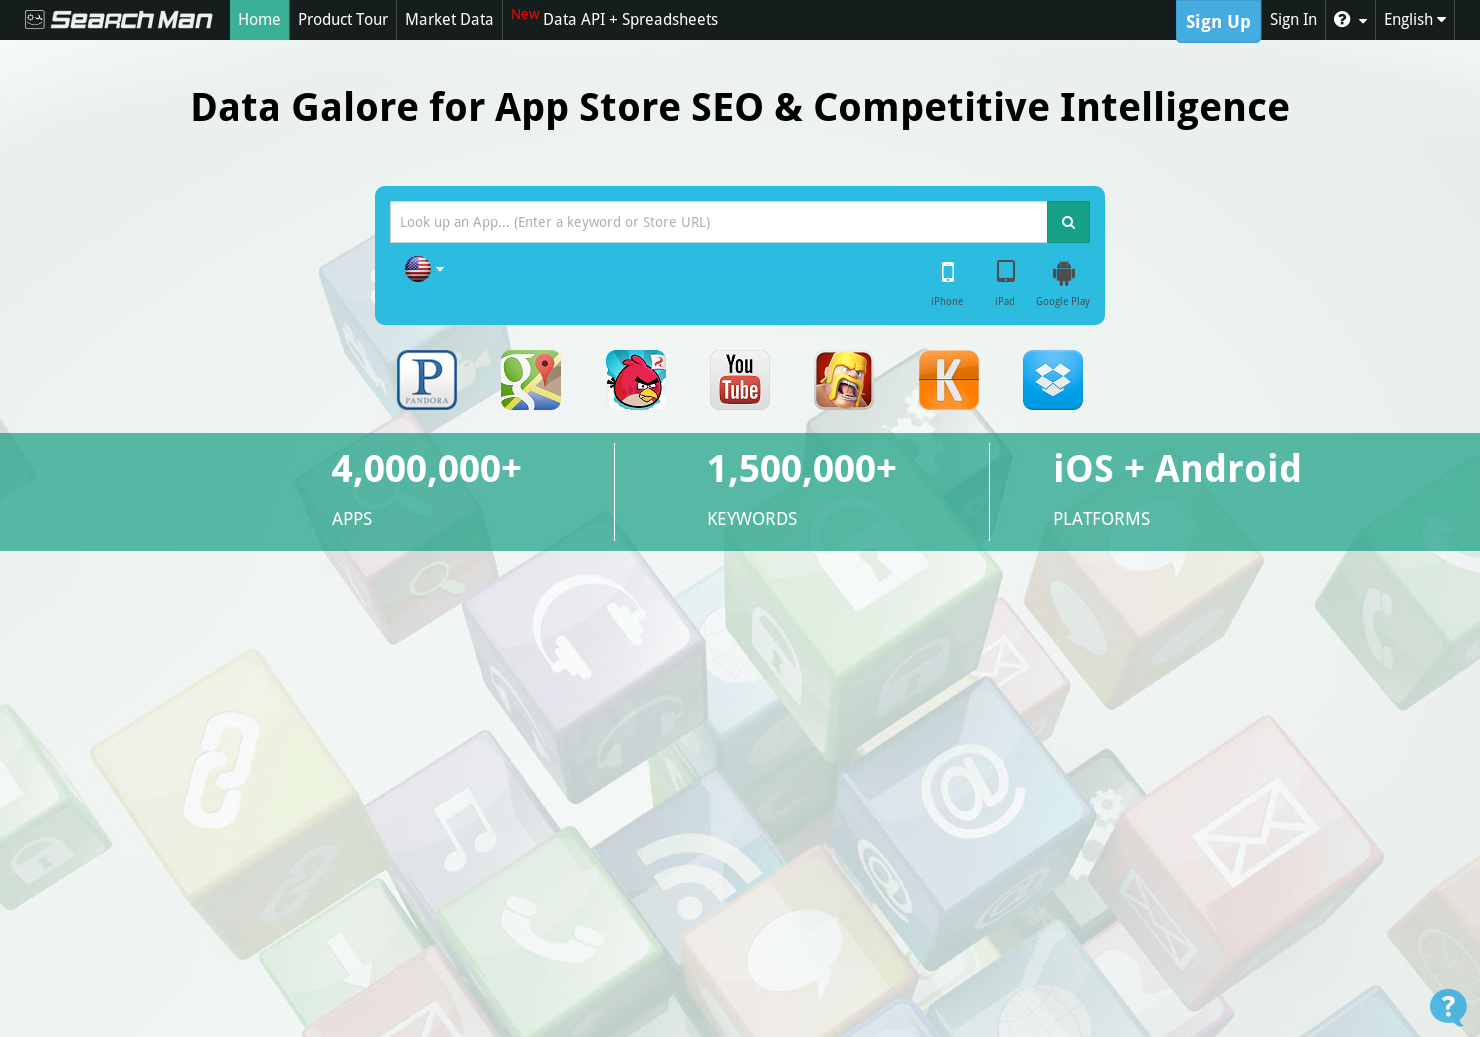 SearchMan SEO - Track your app's search visibility with